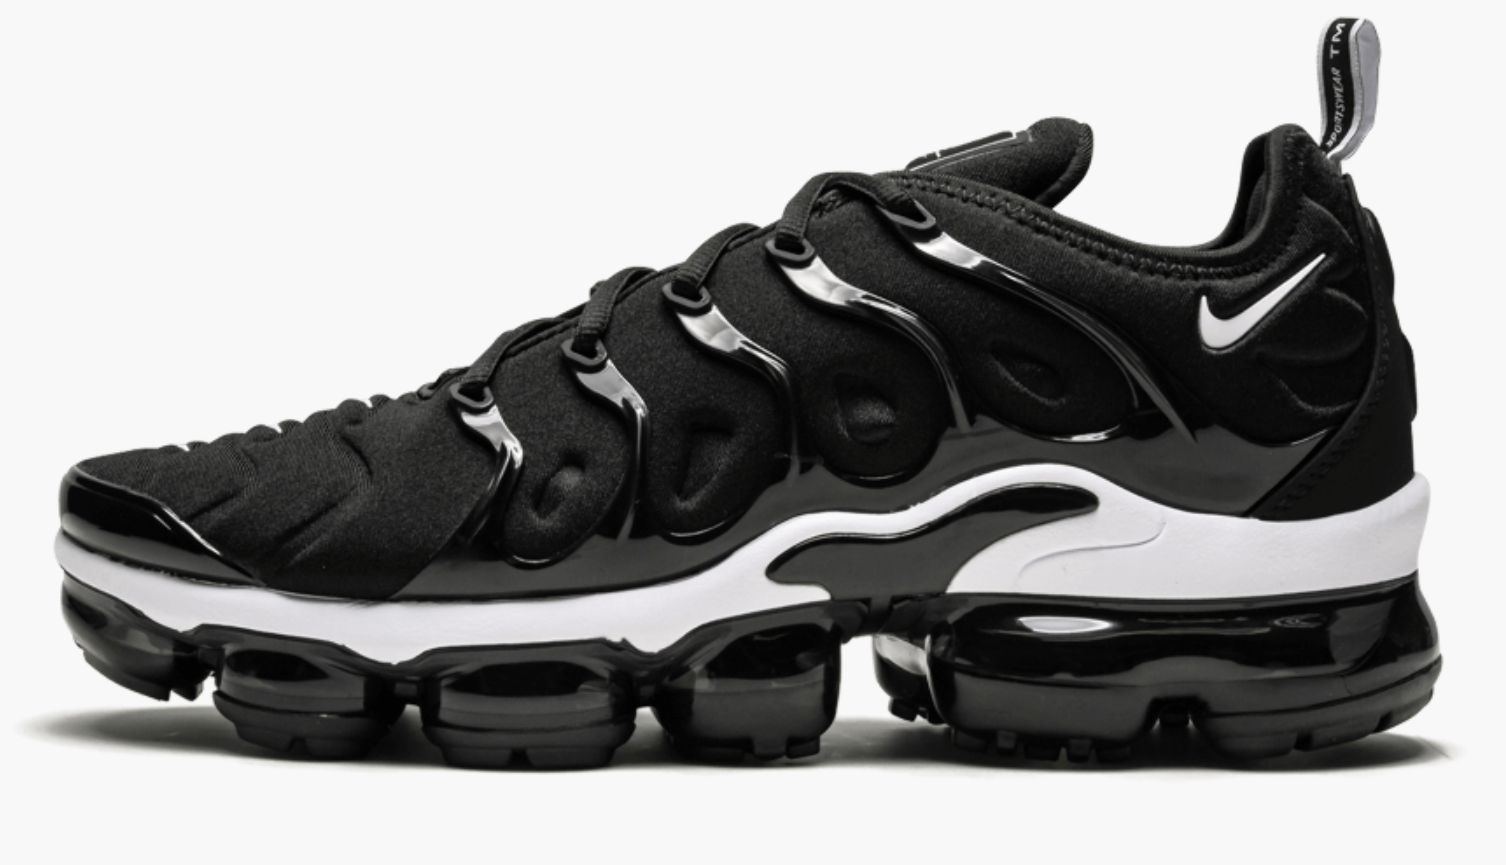 Nike Air Vapormax Plus | Sneaker, Nike air, Nike air max